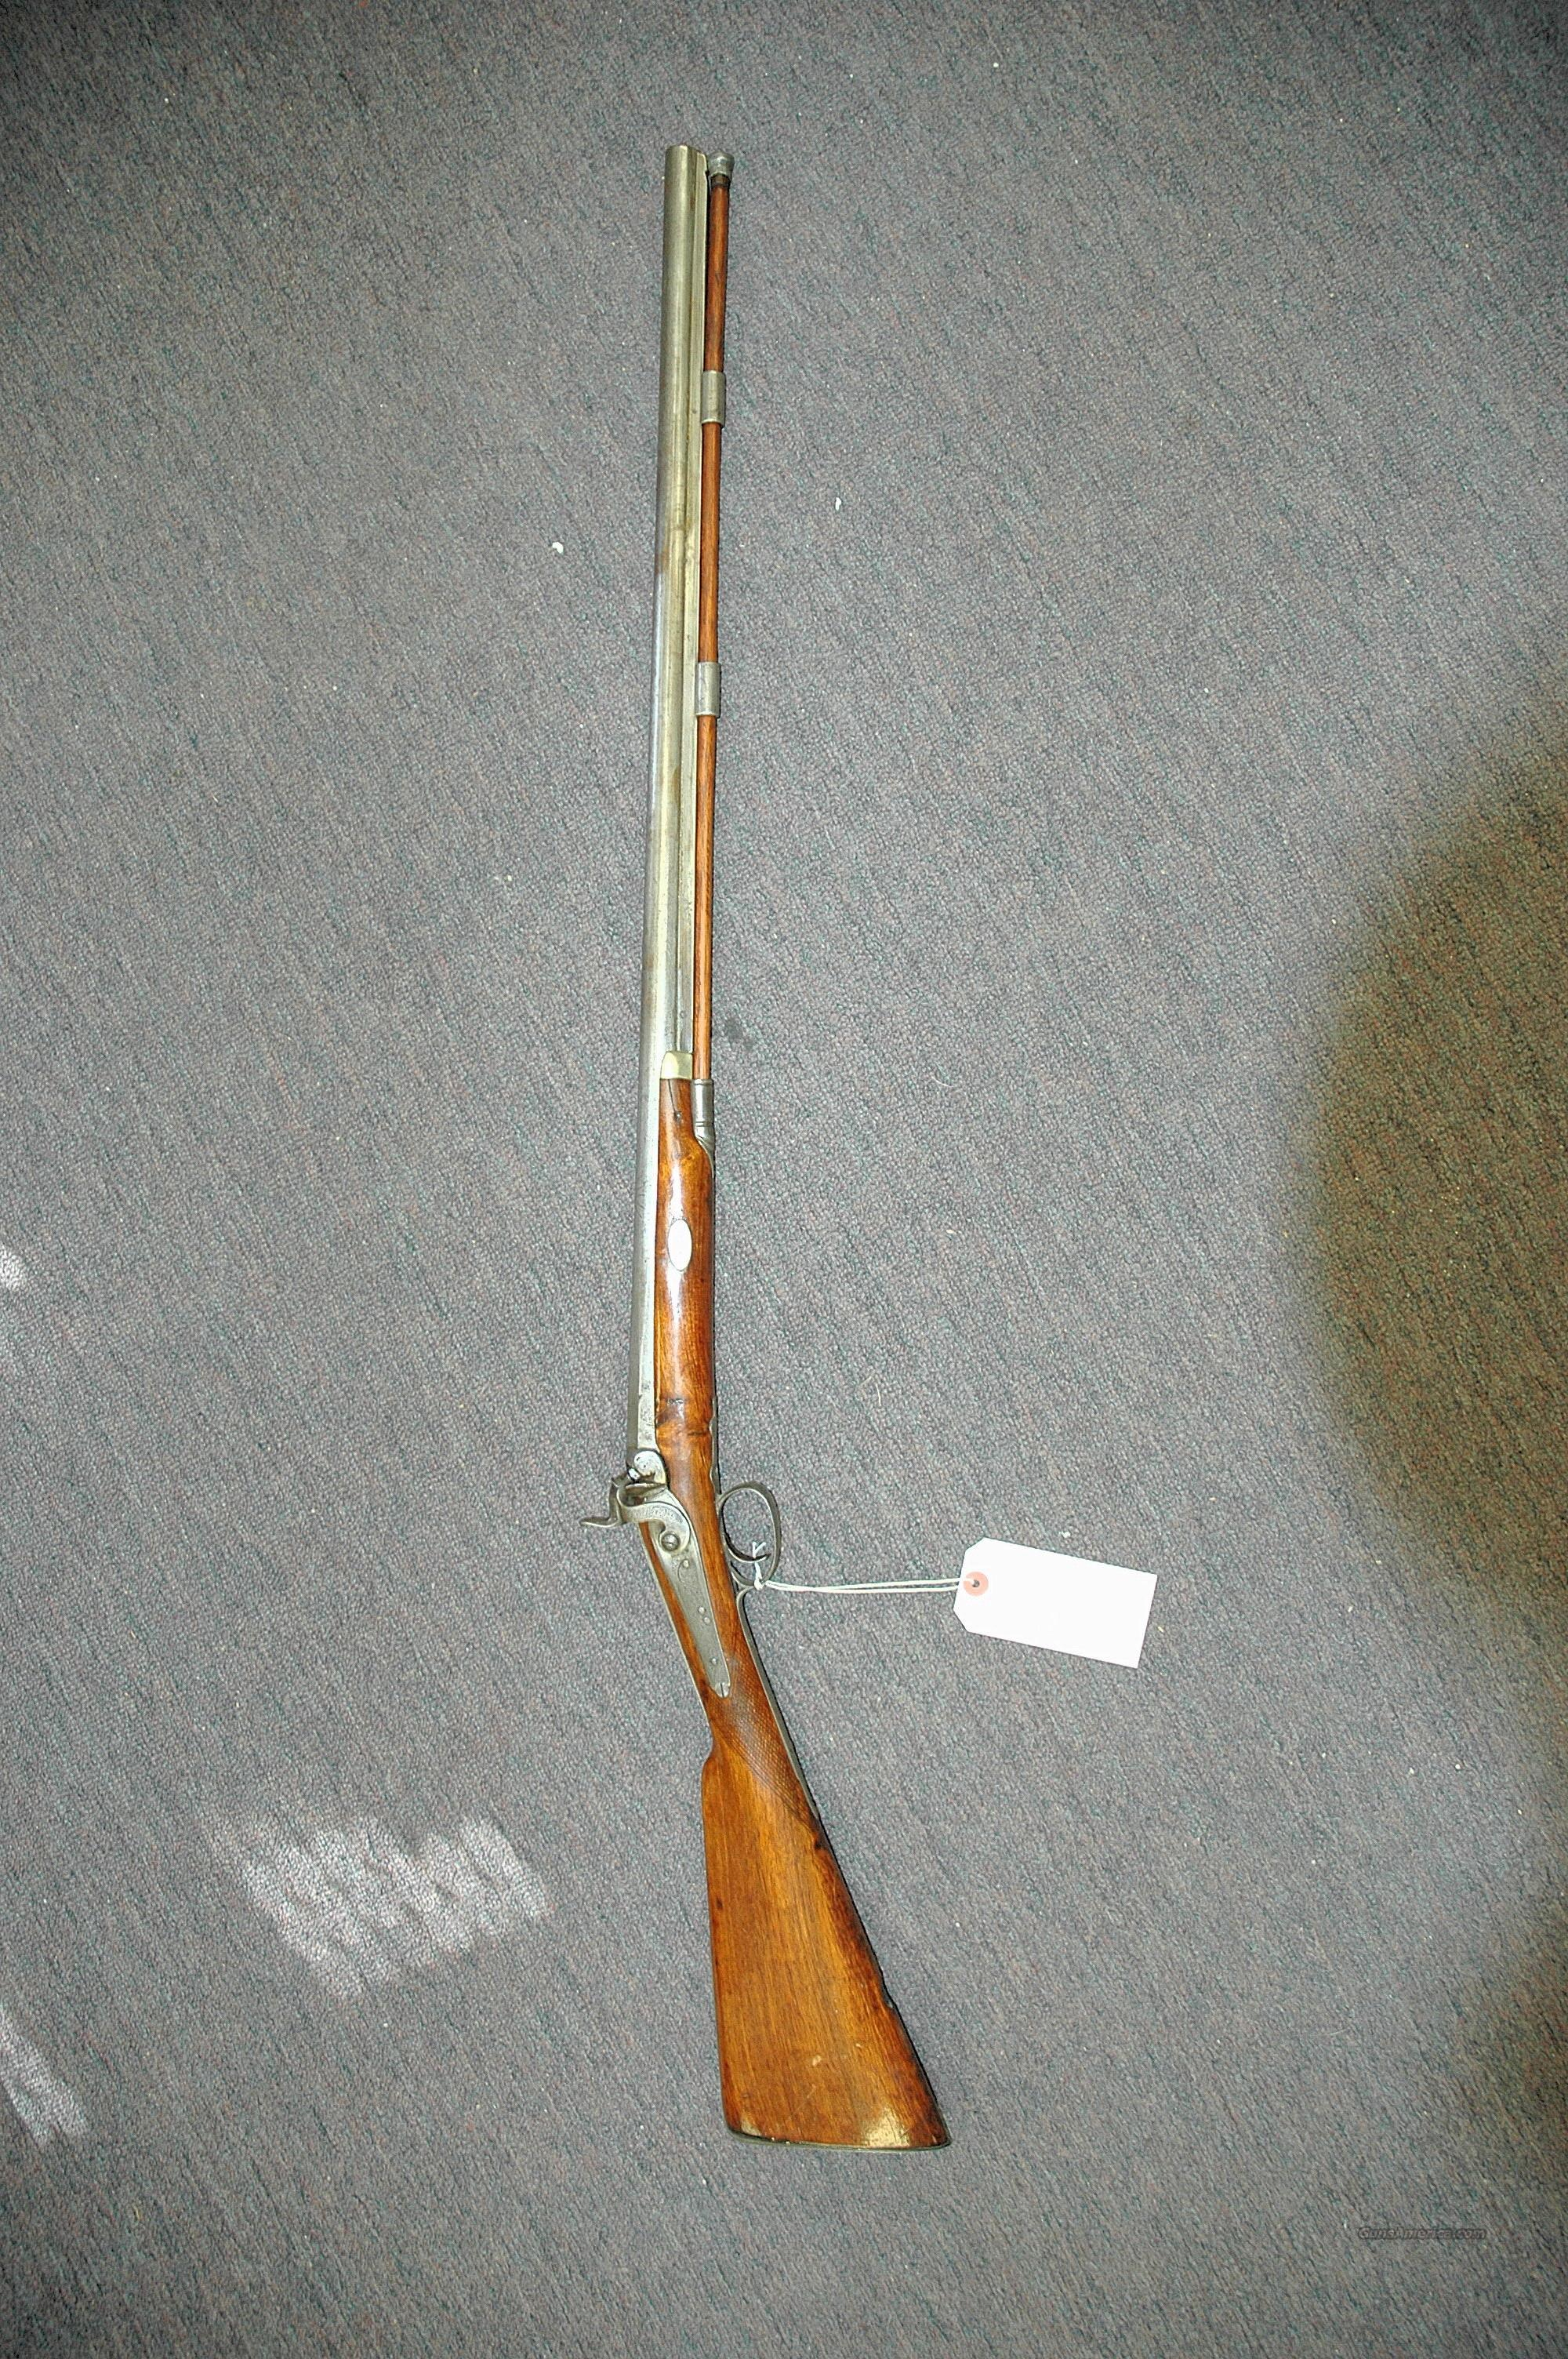 Lewis and Tomes single shot 16 Gauge  Guns > Shotguns > Antique (Pre-1899) Shotguns - Misc.